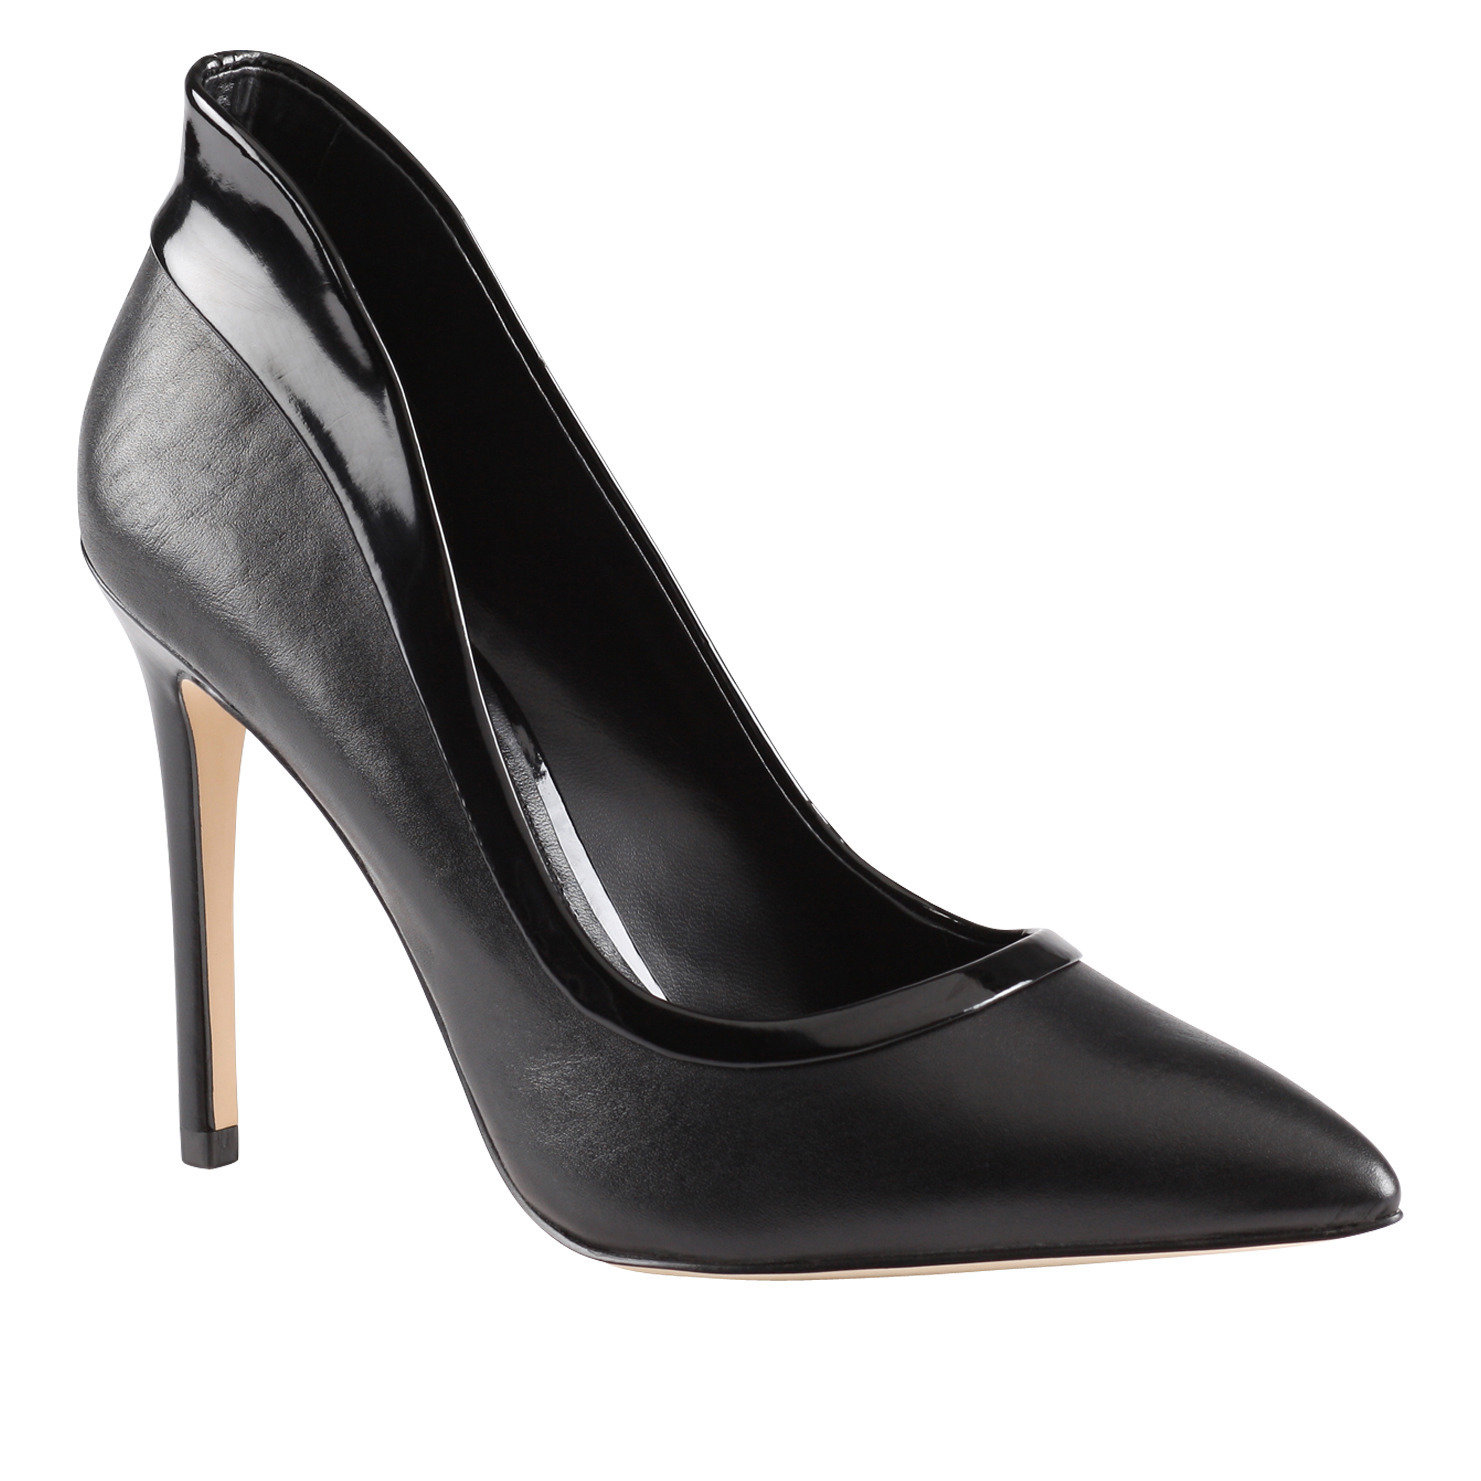 KAZIK - women s high heels shoes for sale at ALDO Shoes. 9f4c6a0aba